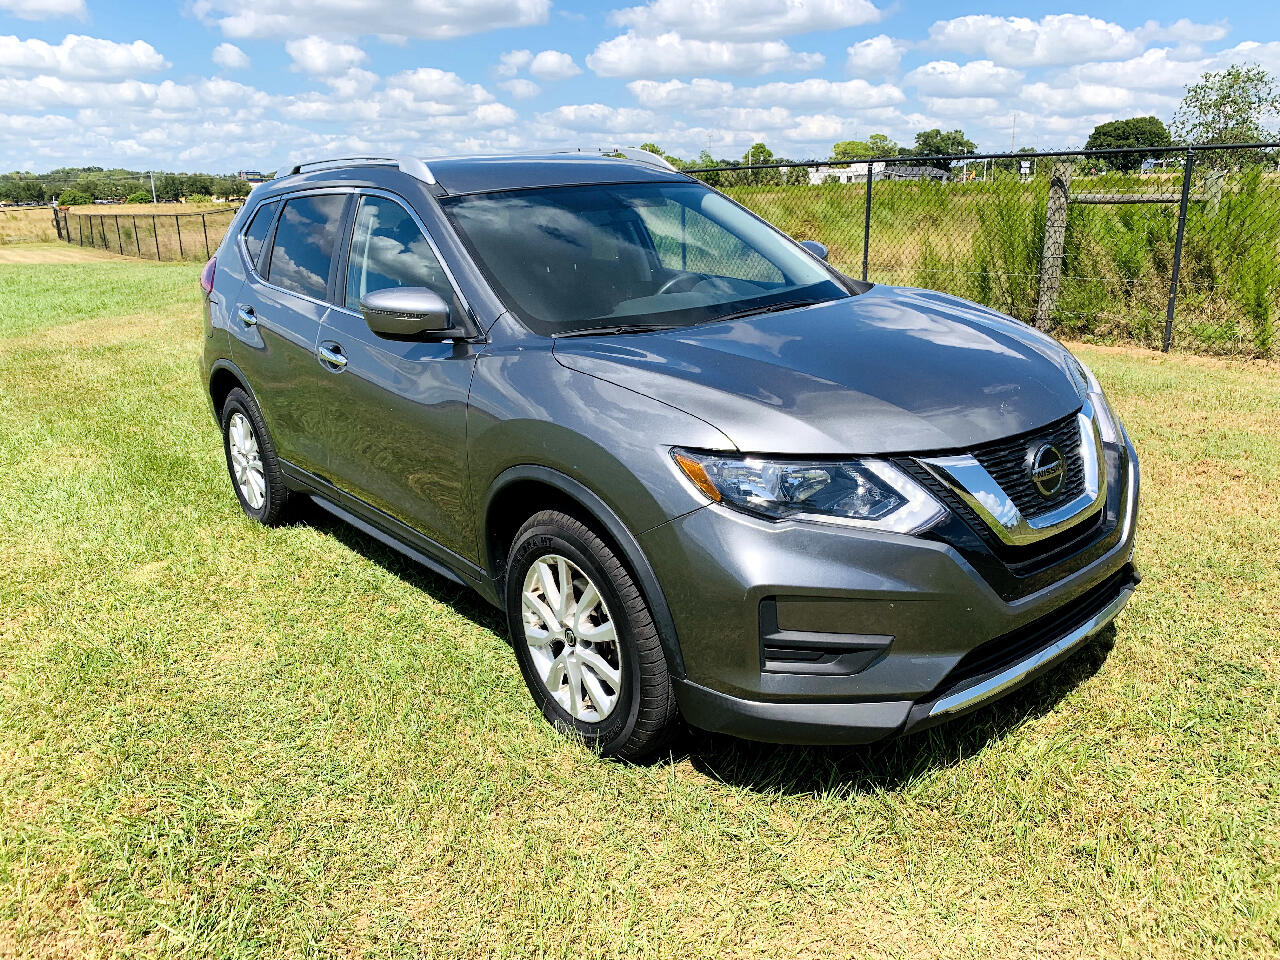 Nissan Rogue 2018 for Sale in Lakeland, FL